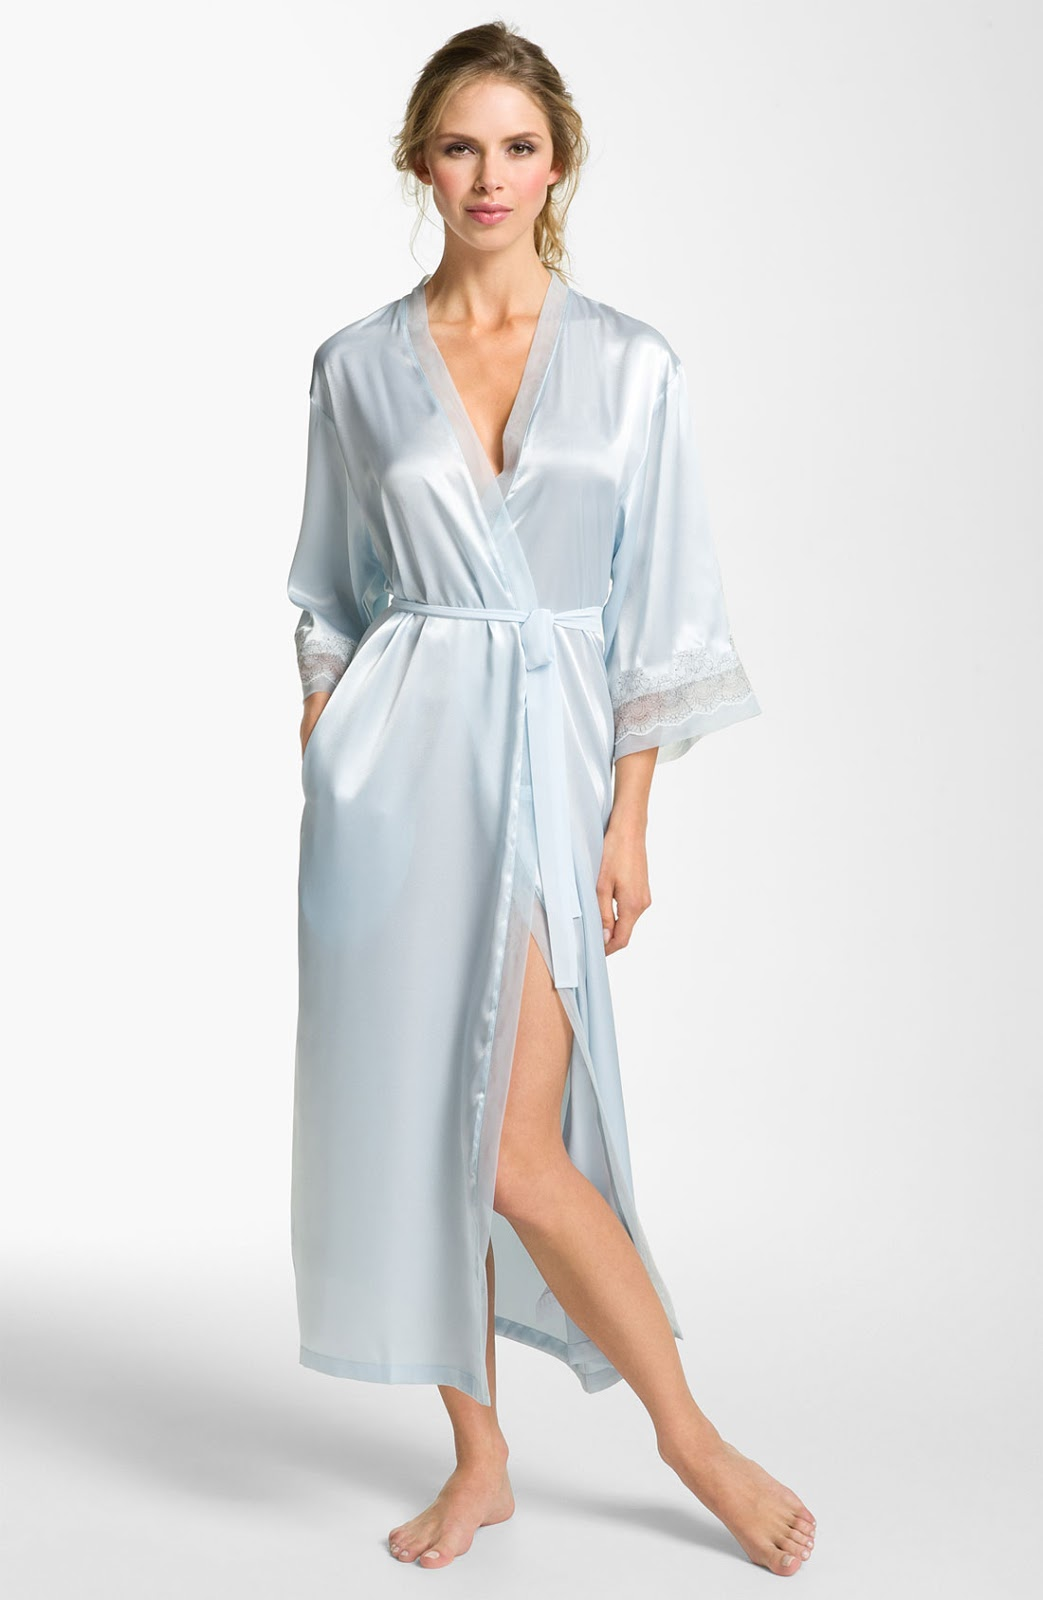 Silk Satin Dress Silk Satin Fetish Nightwear Dress-8378